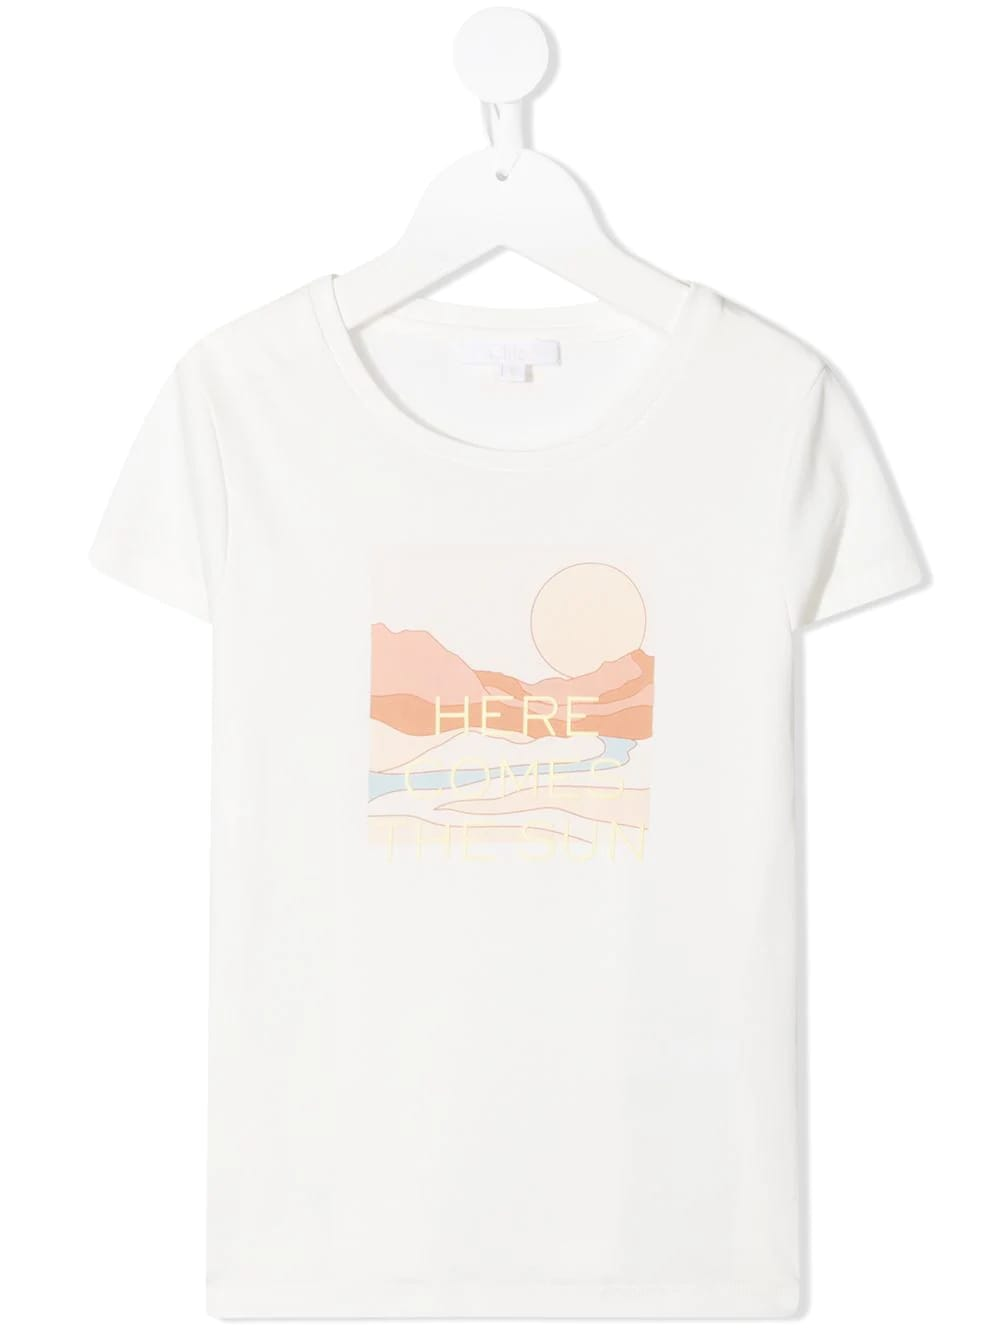 Chloé Kids' Printed Cotton T-shirt In White In Bianco Sporco